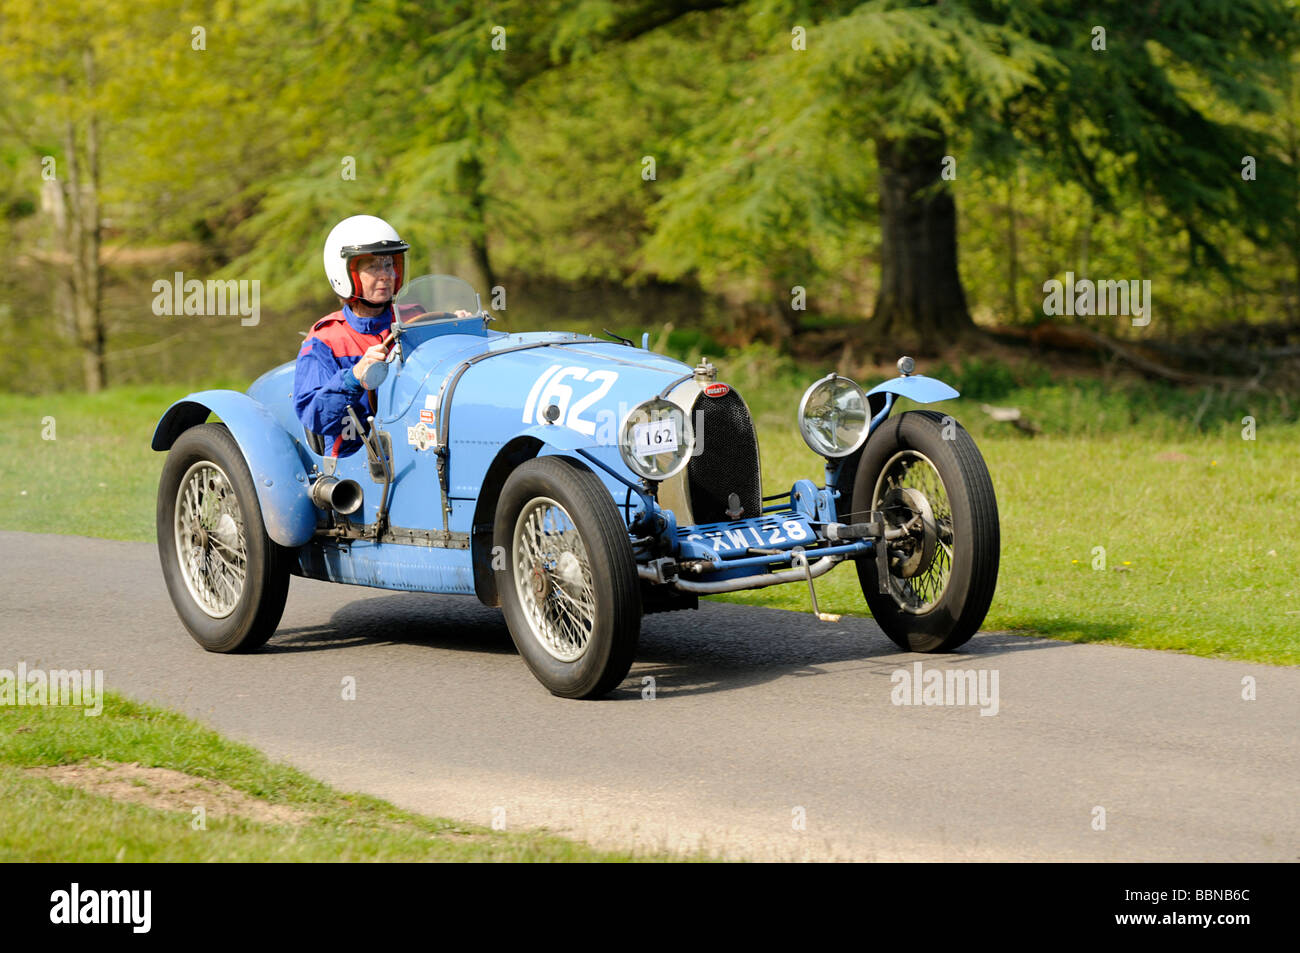 bugatti type 37 1926 1500cc wiscombe hill climb 10 may 2009 stock photo royalty free image. Black Bedroom Furniture Sets. Home Design Ideas